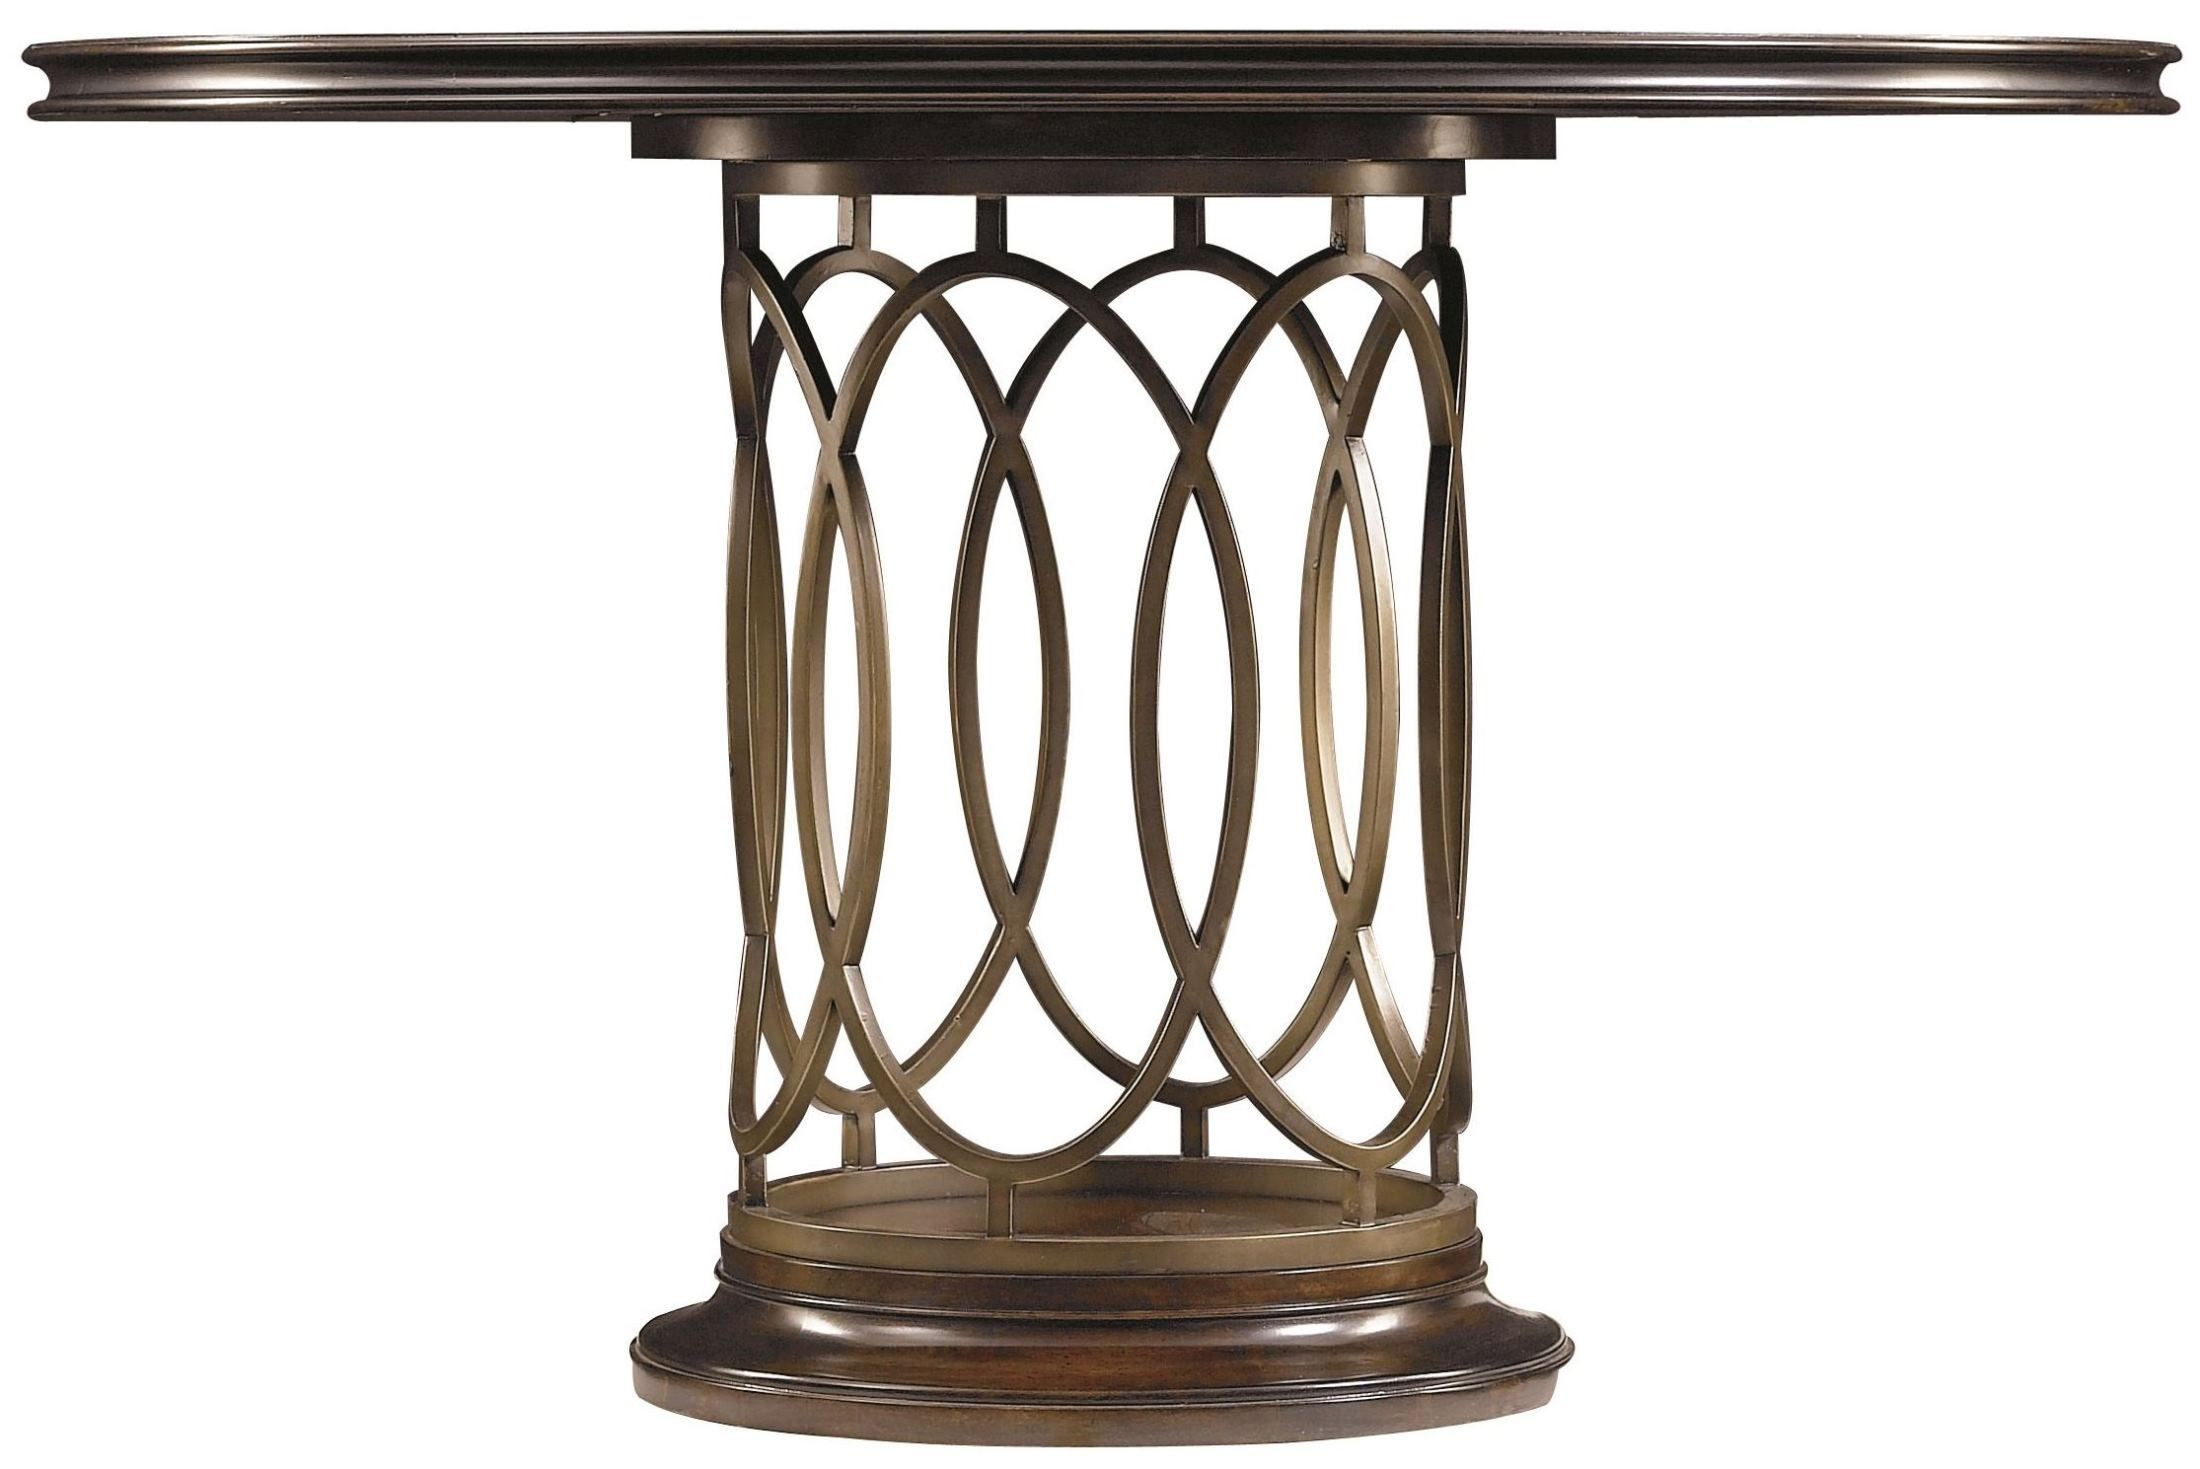 Avalon Heights Chelsea Neo Deco Pedestal Dining Room Set  : 1931130silo1 from colemanfurniture.com size 2200 x 1469 jpeg 276kB